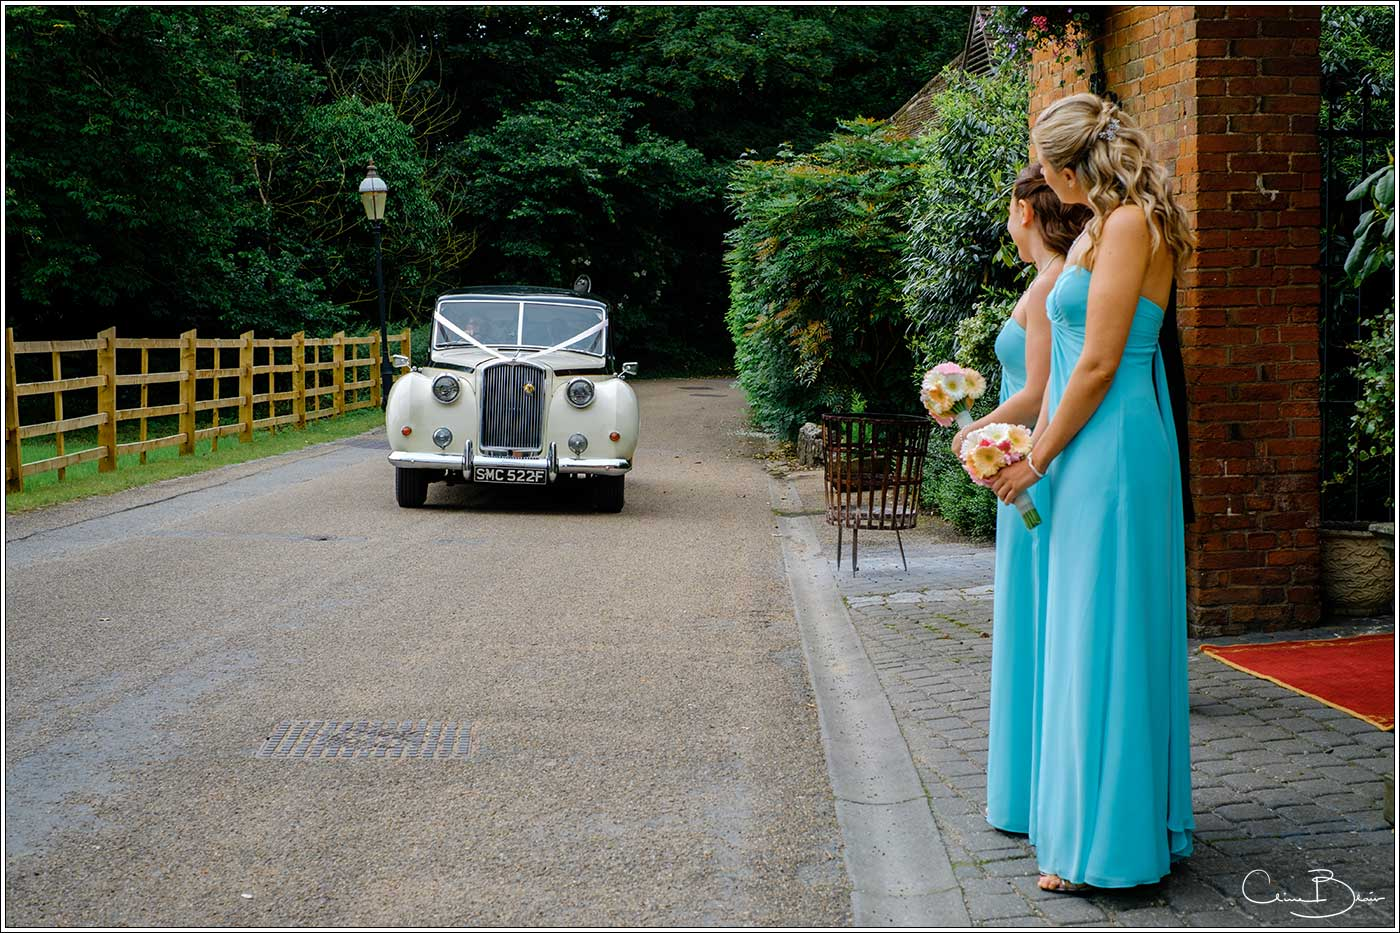 Coombe Abbey wedding photography showing bridal car arriving at The Abbeygate